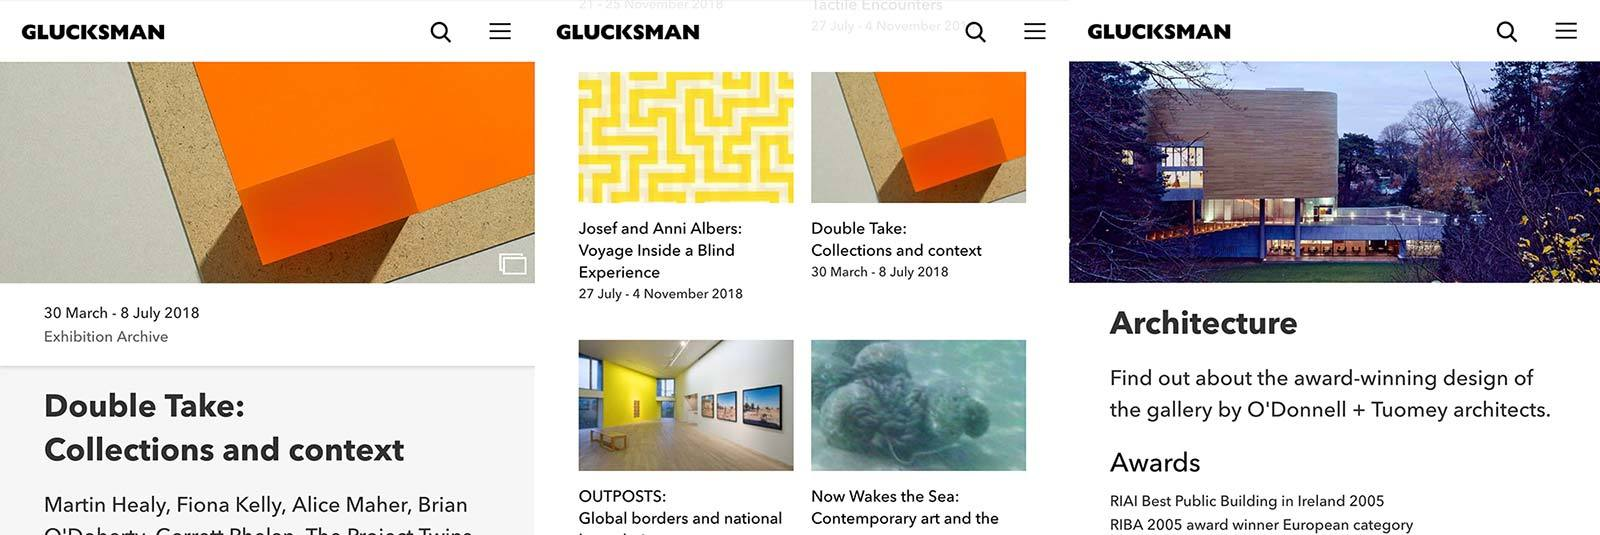 The Glucksman Website Design